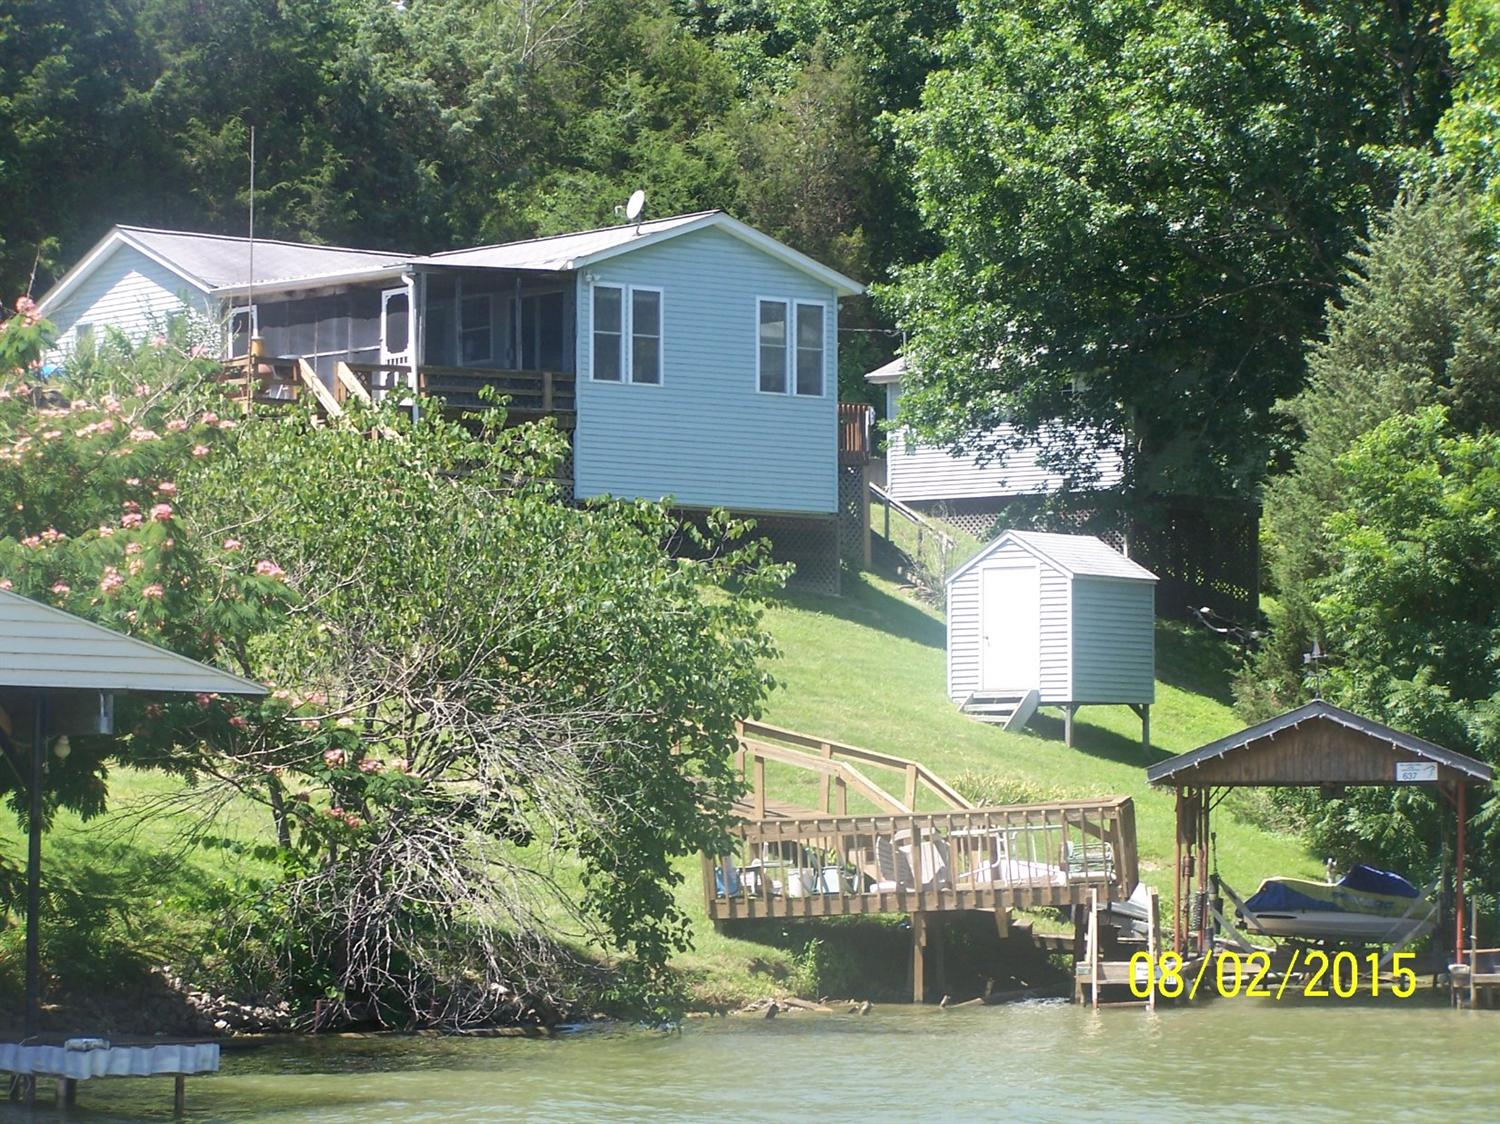 960 Jacob Dr, Williamstown, KY 41097